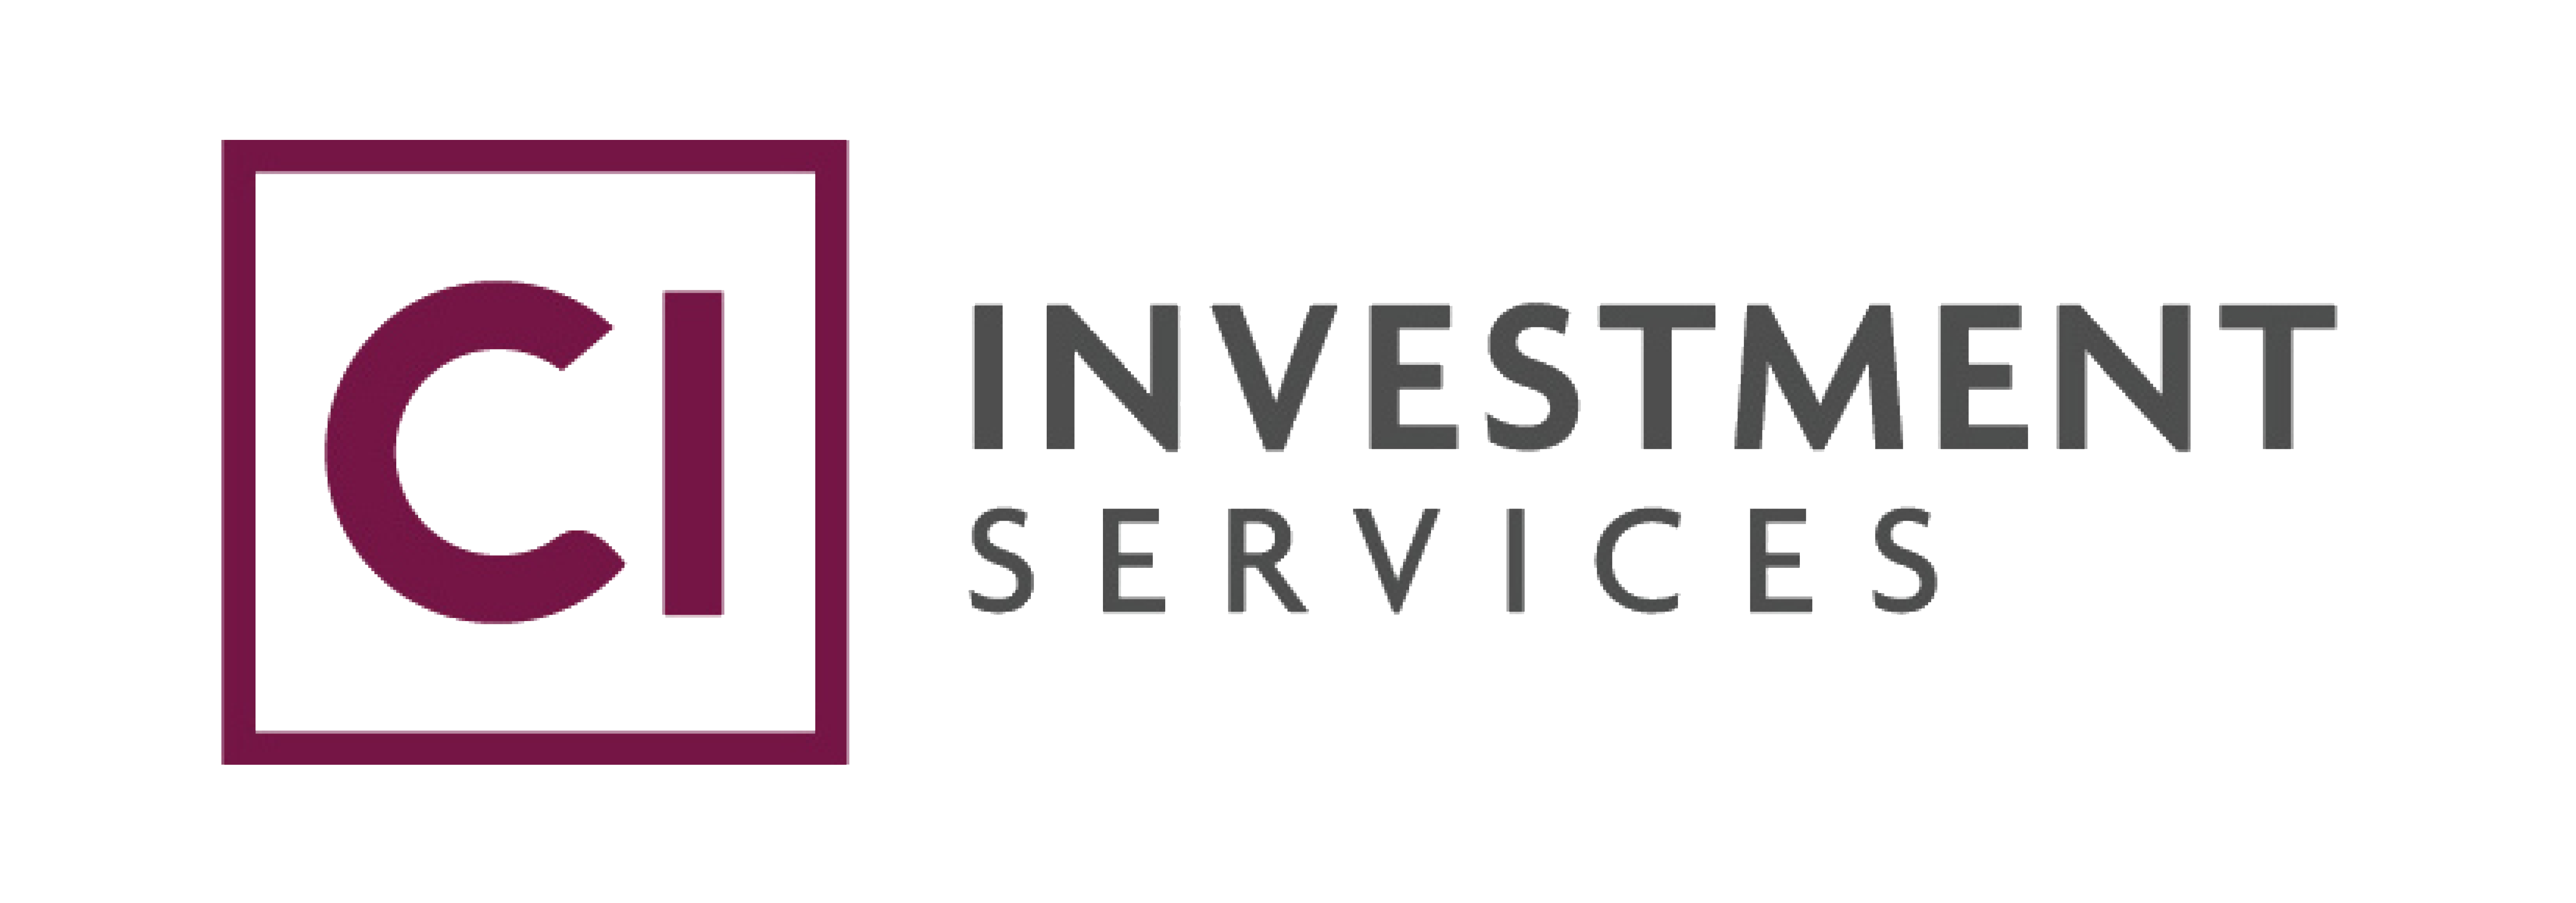 CI Investment Services